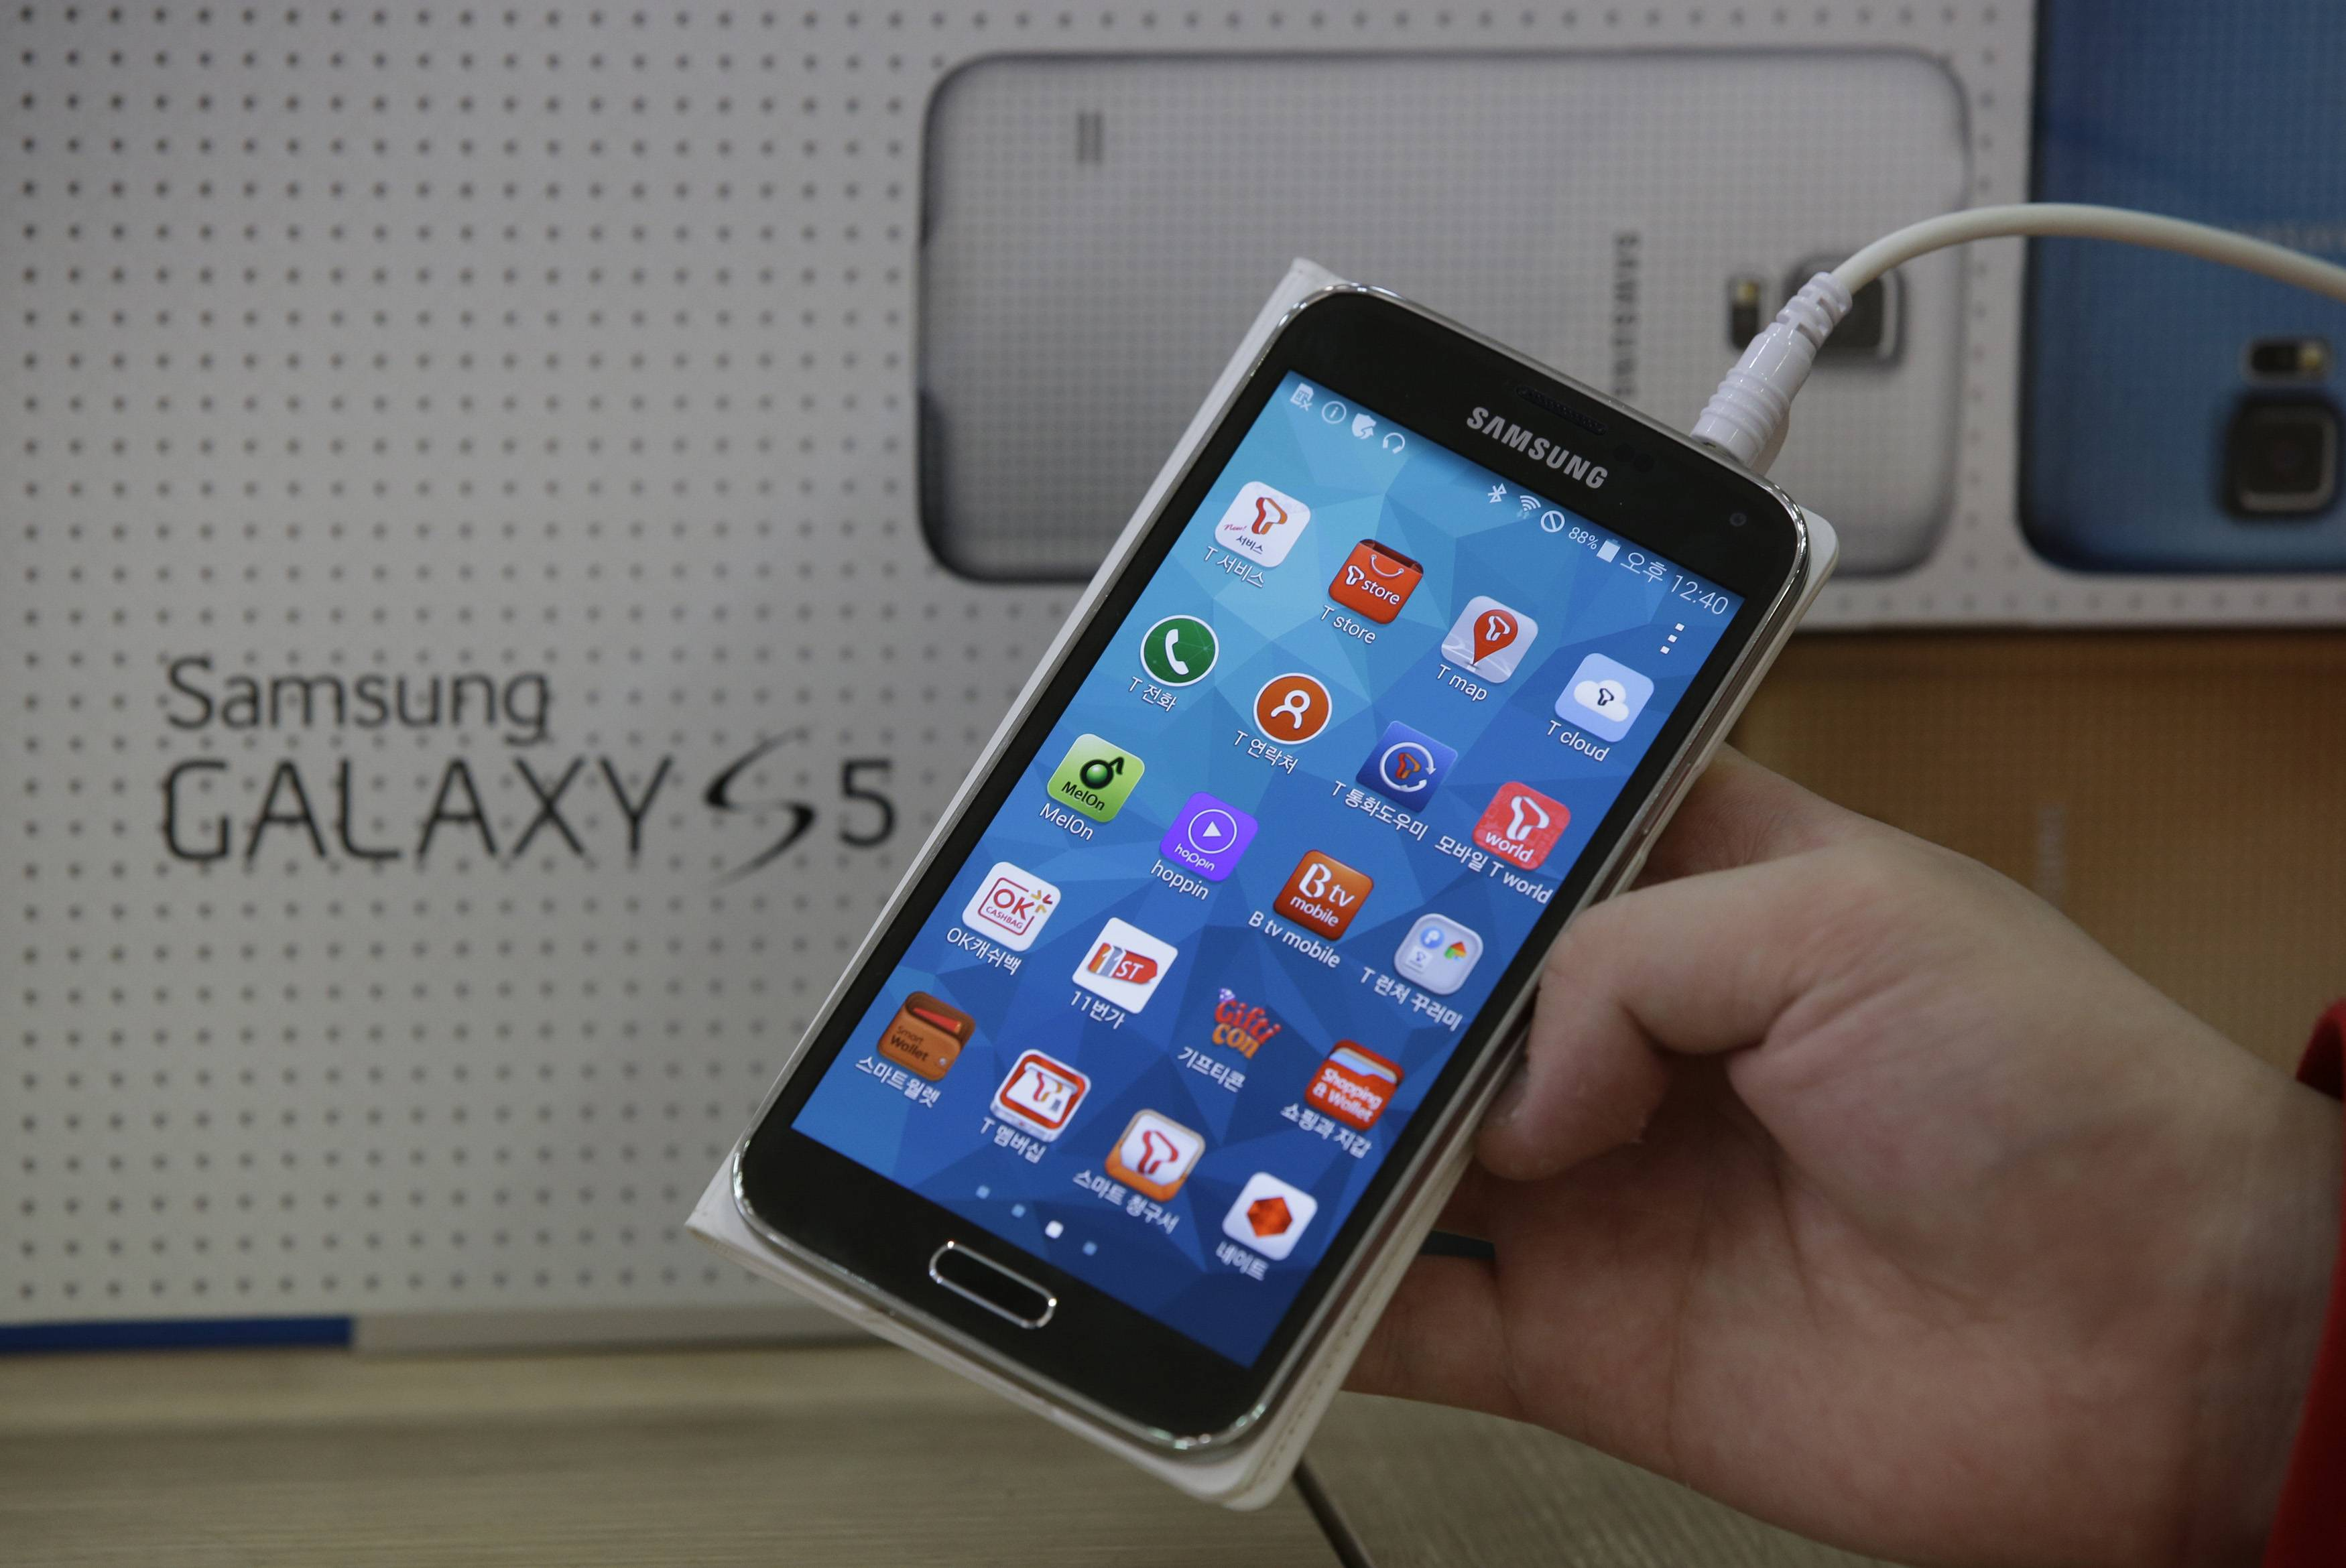 SK Telecom, South Korea's largest mobile carrier, said it will start selling the Galaxy S5 on Thursday, two weeks before the scheduled sales launch on April 11.